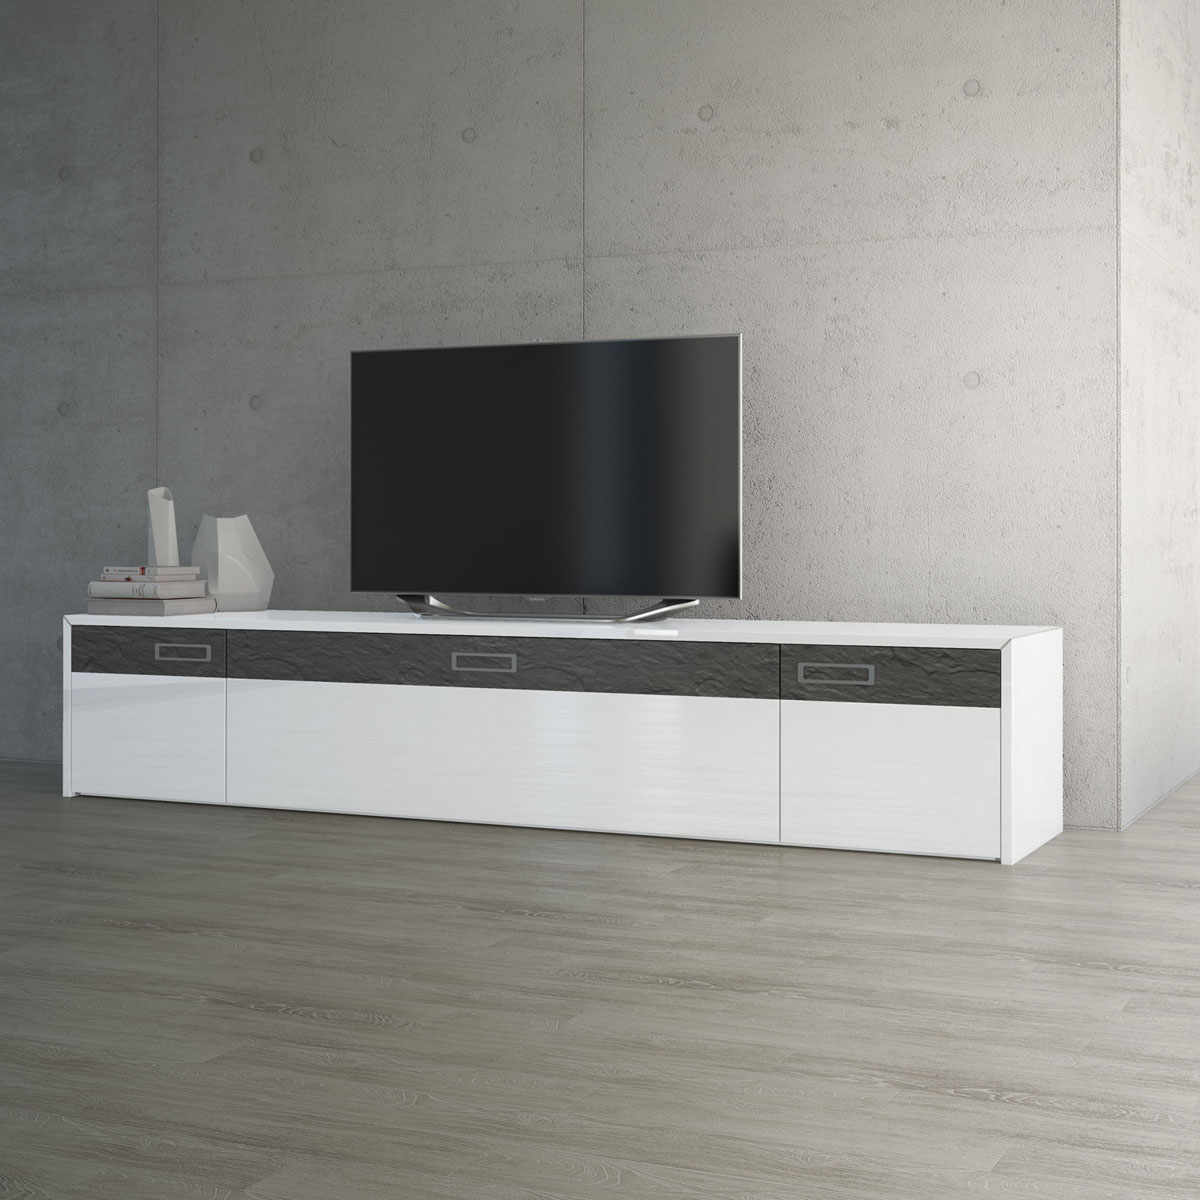 sideboard fernsehmbel cheap hilton garden inn stuttgart neckarpark blick vom bett aus auf. Black Bedroom Furniture Sets. Home Design Ideas